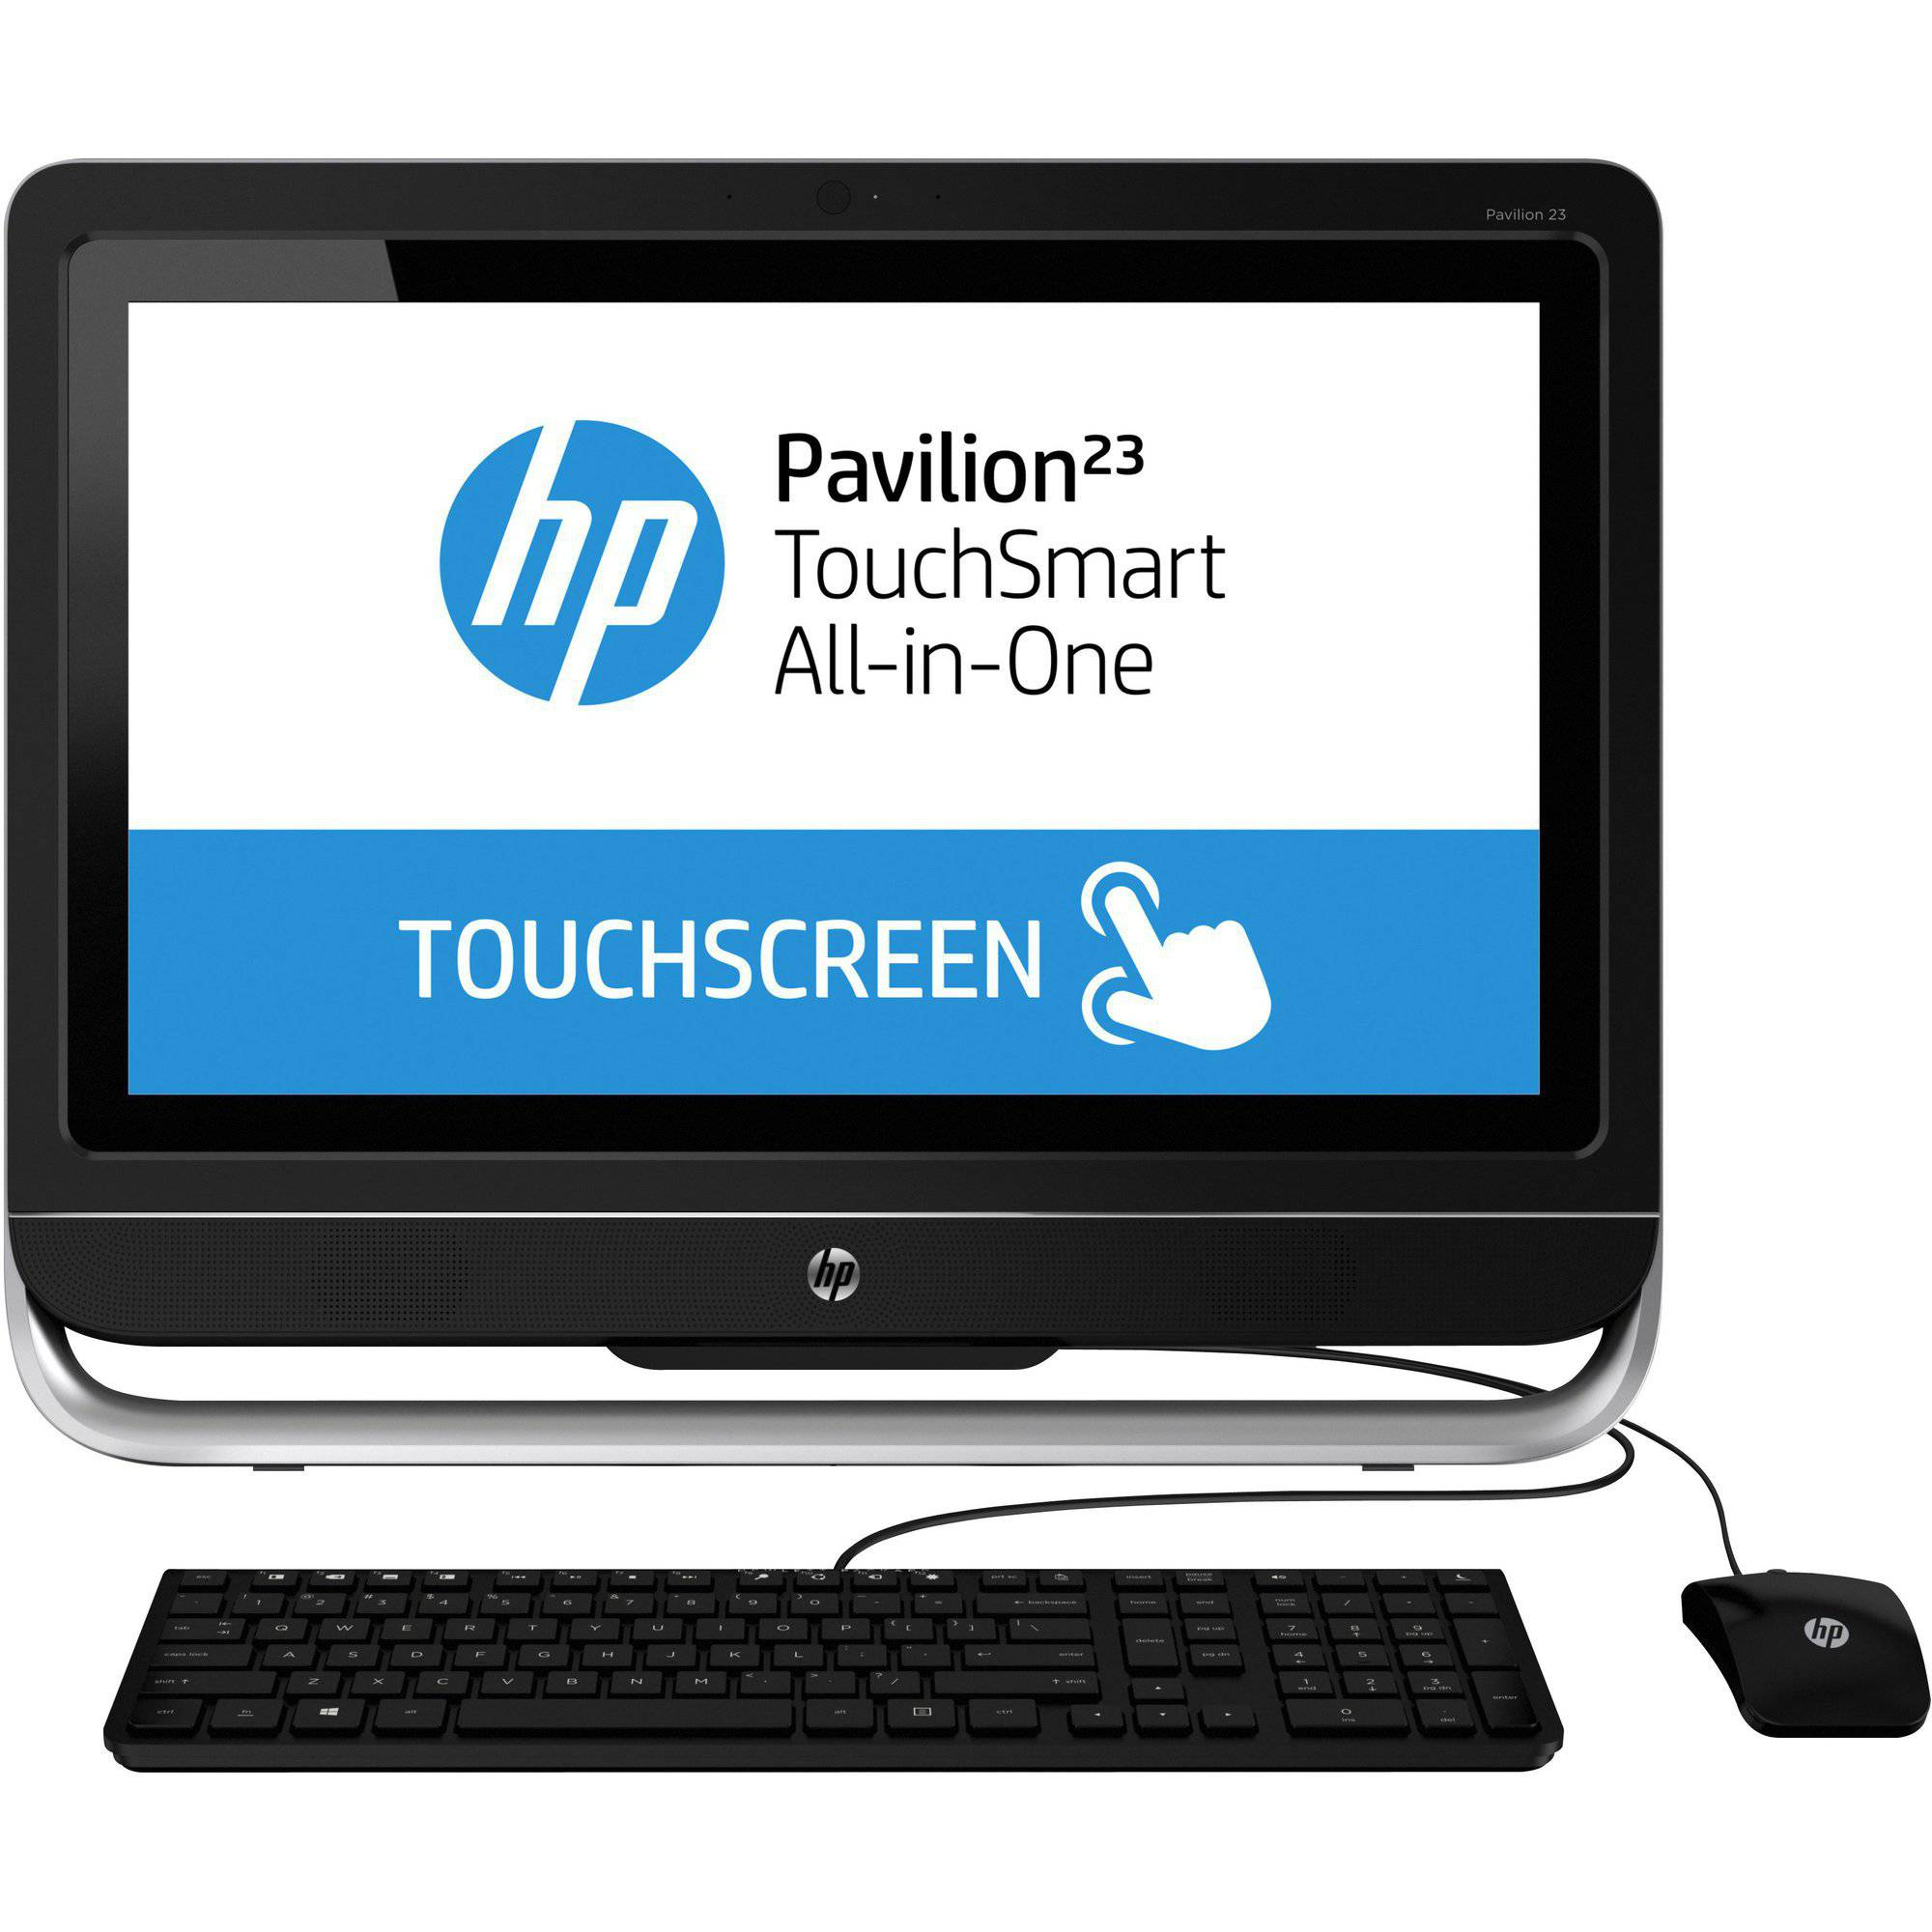 "Refurbished HP Black TouchSmart Pavilion 2ff3-h027c All-in-One Desktop PC with Intel Core i3-4130T Processor, 8GB Memory, 23"" touch screen, 1TB Hard Drive and Windows 8.1"